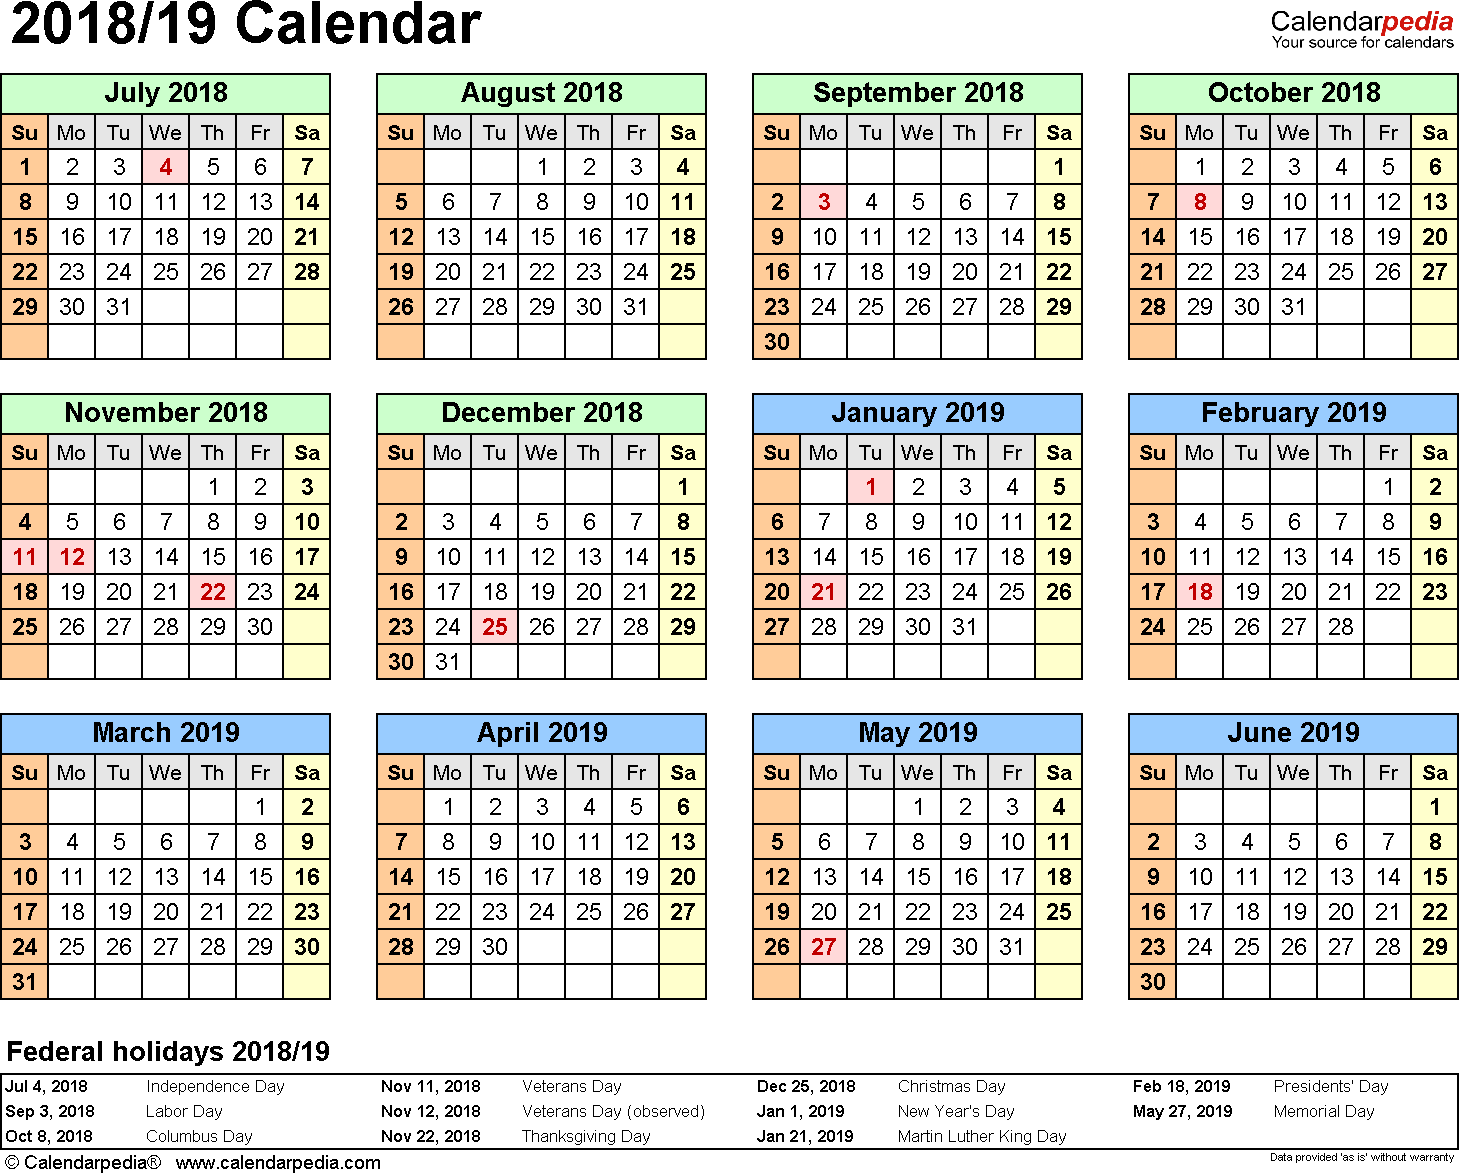 Template 3: 2018/2019 split year/half year calendar, for Microsoft Excel (.xlsx), landscape orientation, year at a glance, 1 page